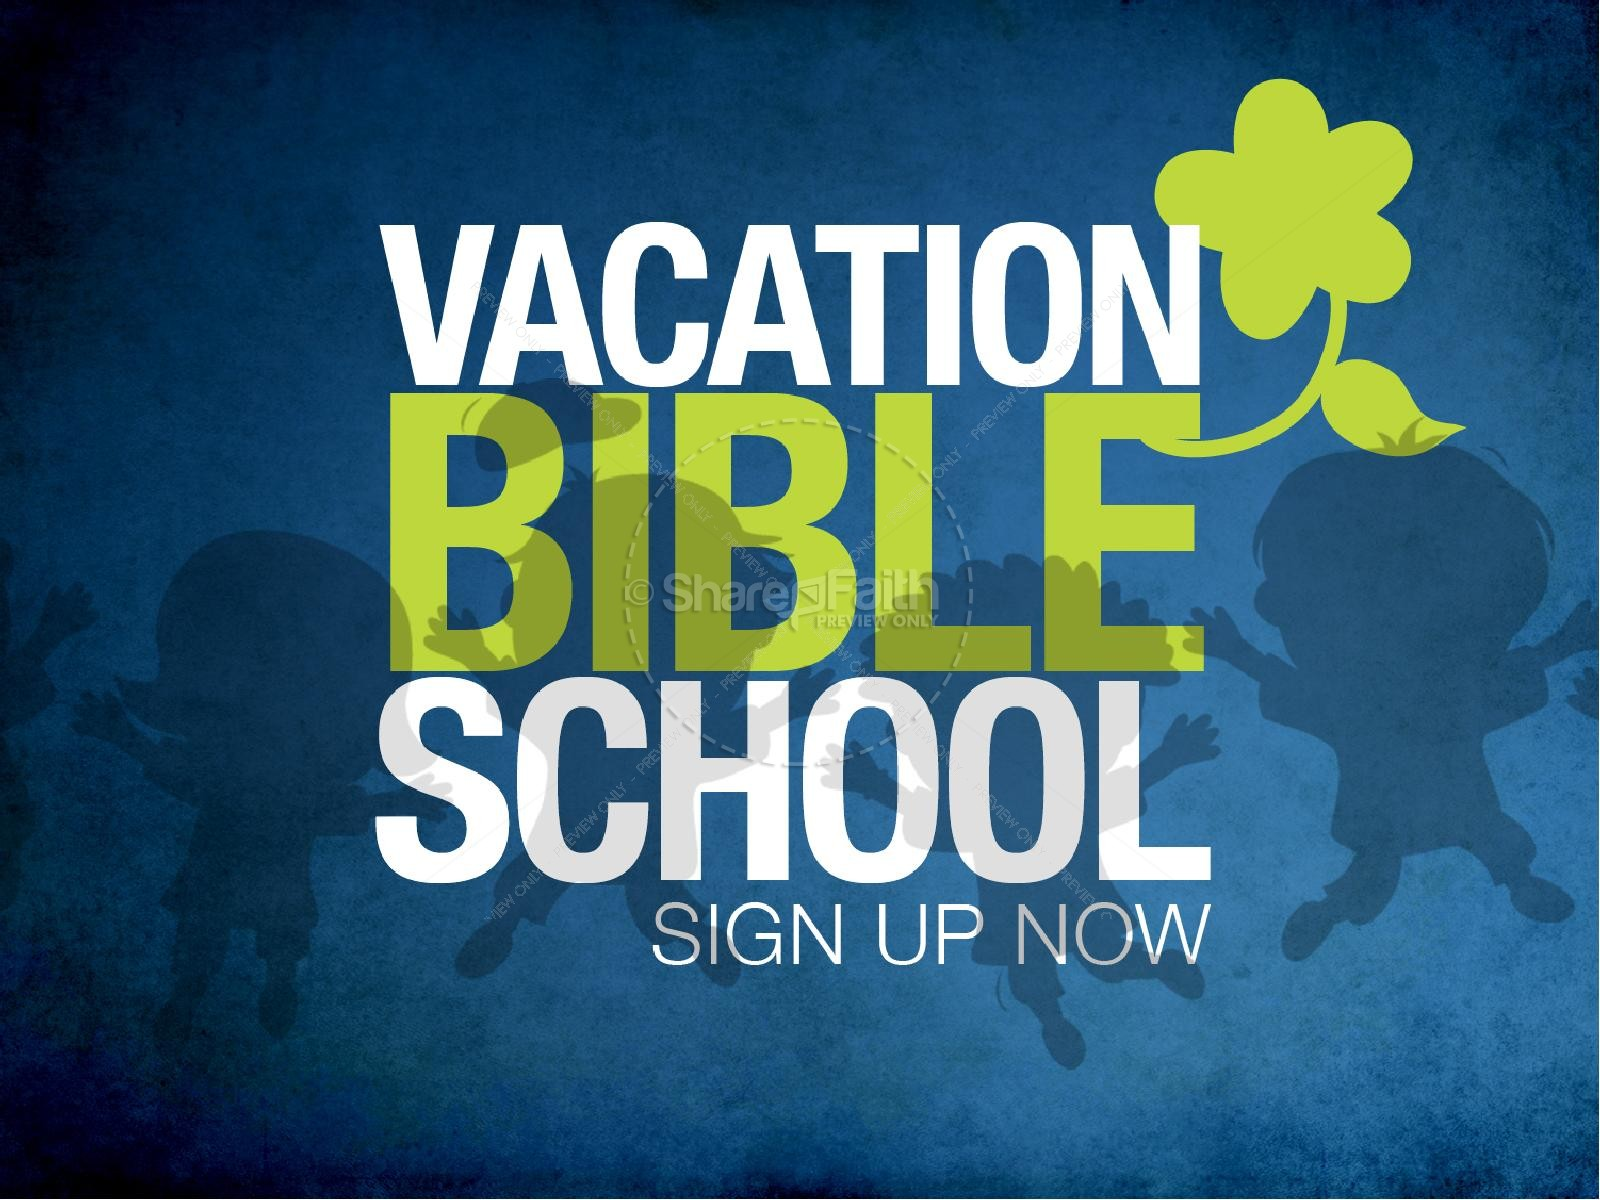 Vacation bible school powerpoint template powerpoint sermons vacation bible school powerpoint template toneelgroepblik Choice Image